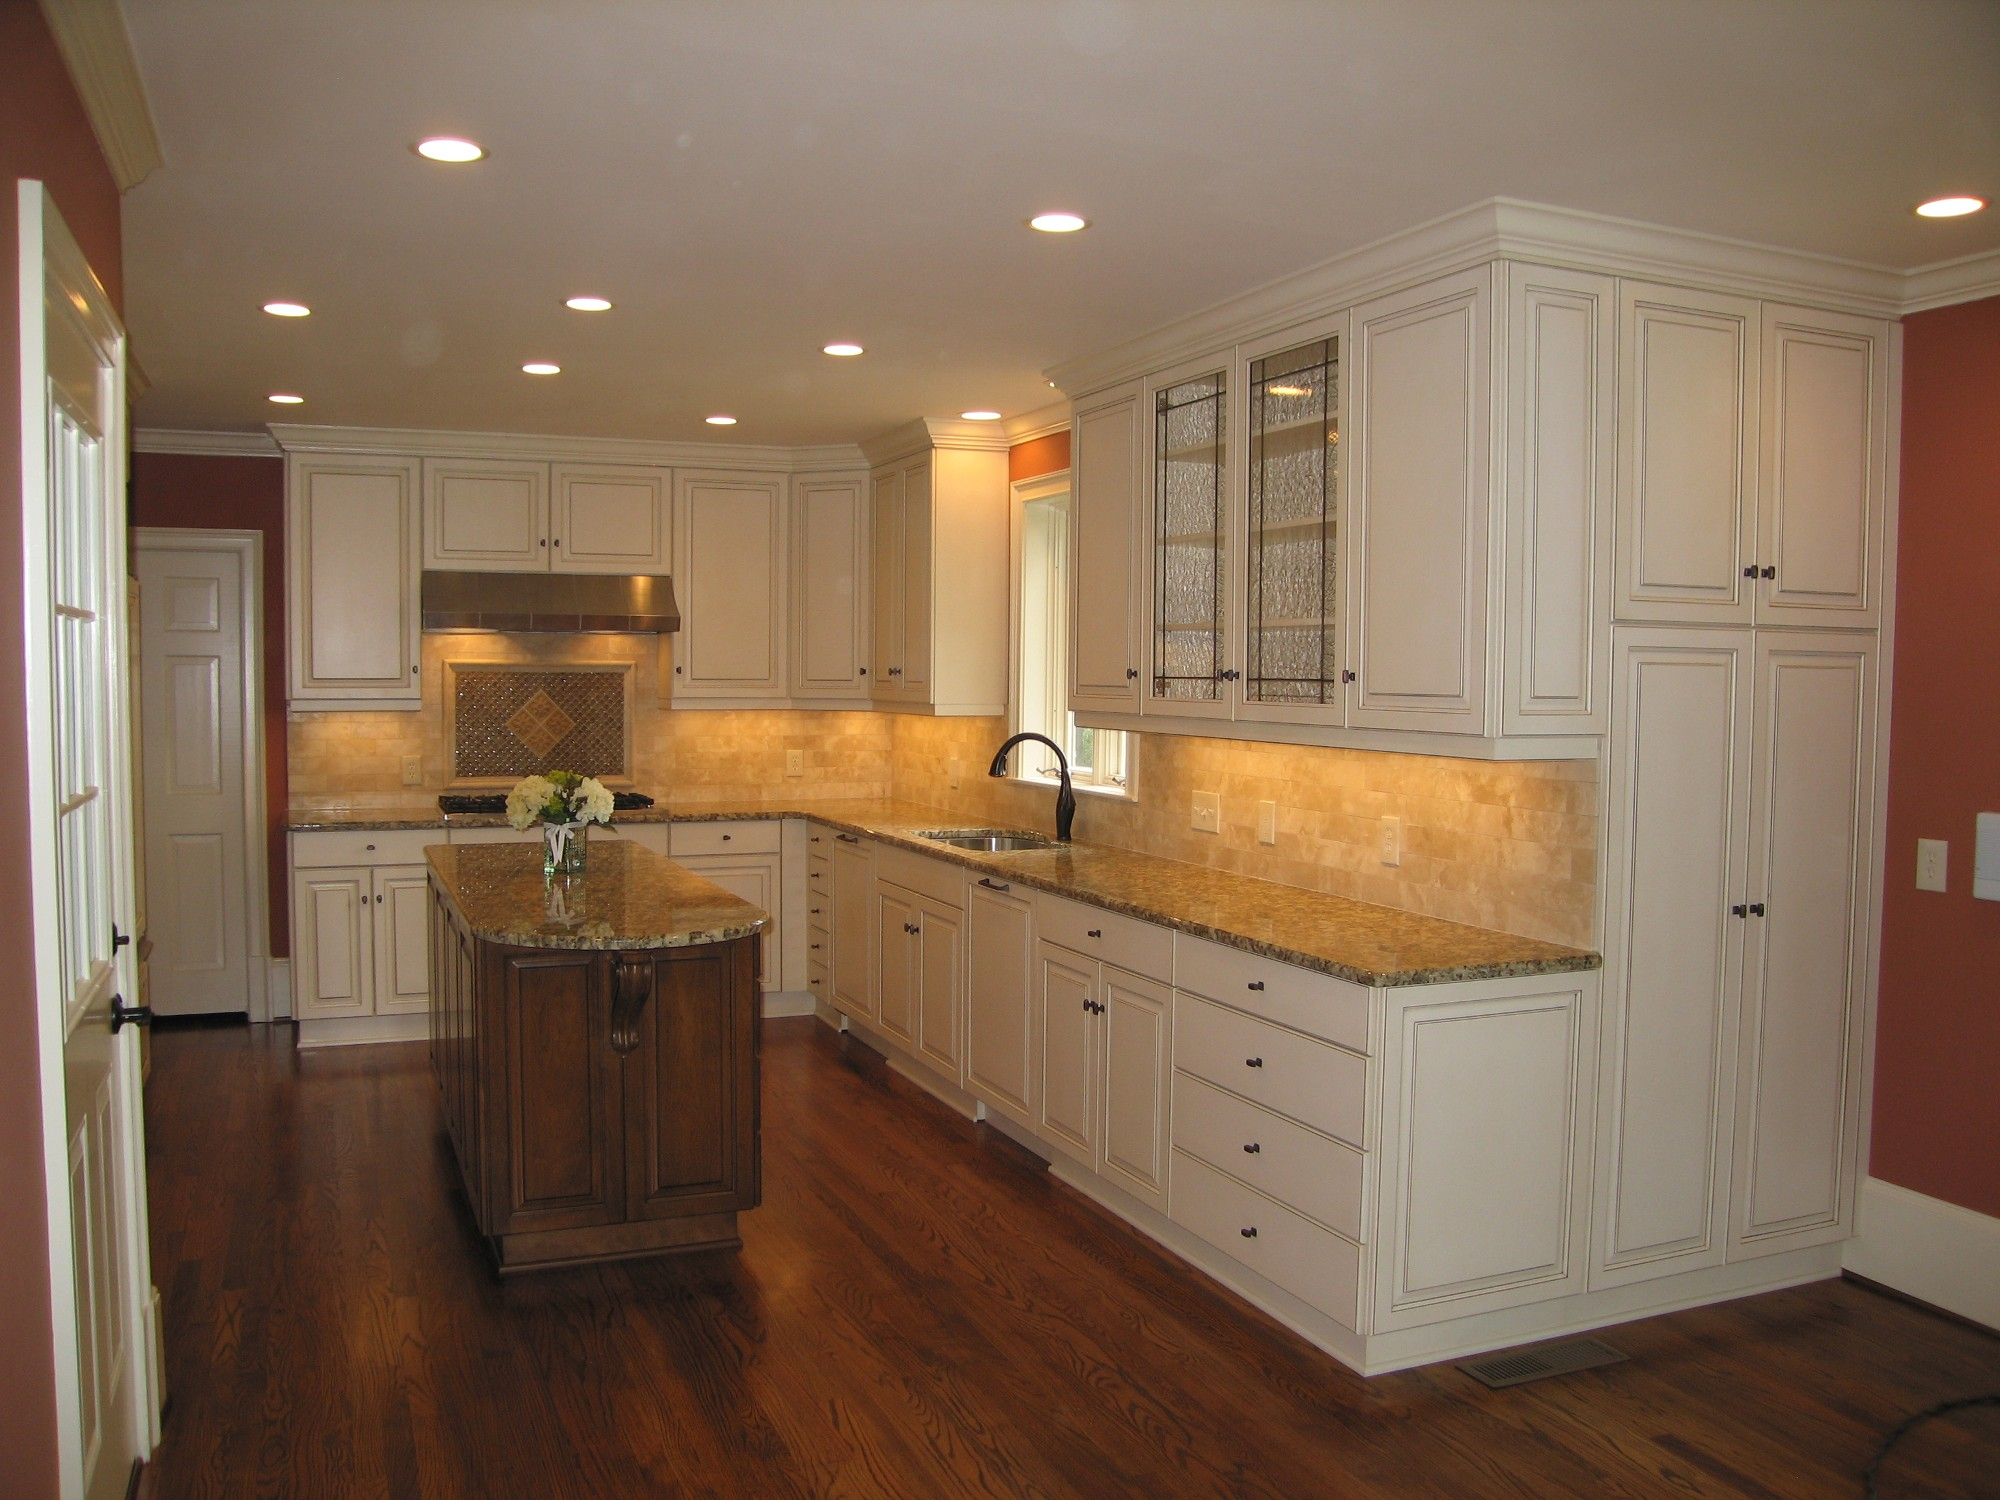 We can create custom cabinets in Norcross, GA, that are perfect for your kitchen